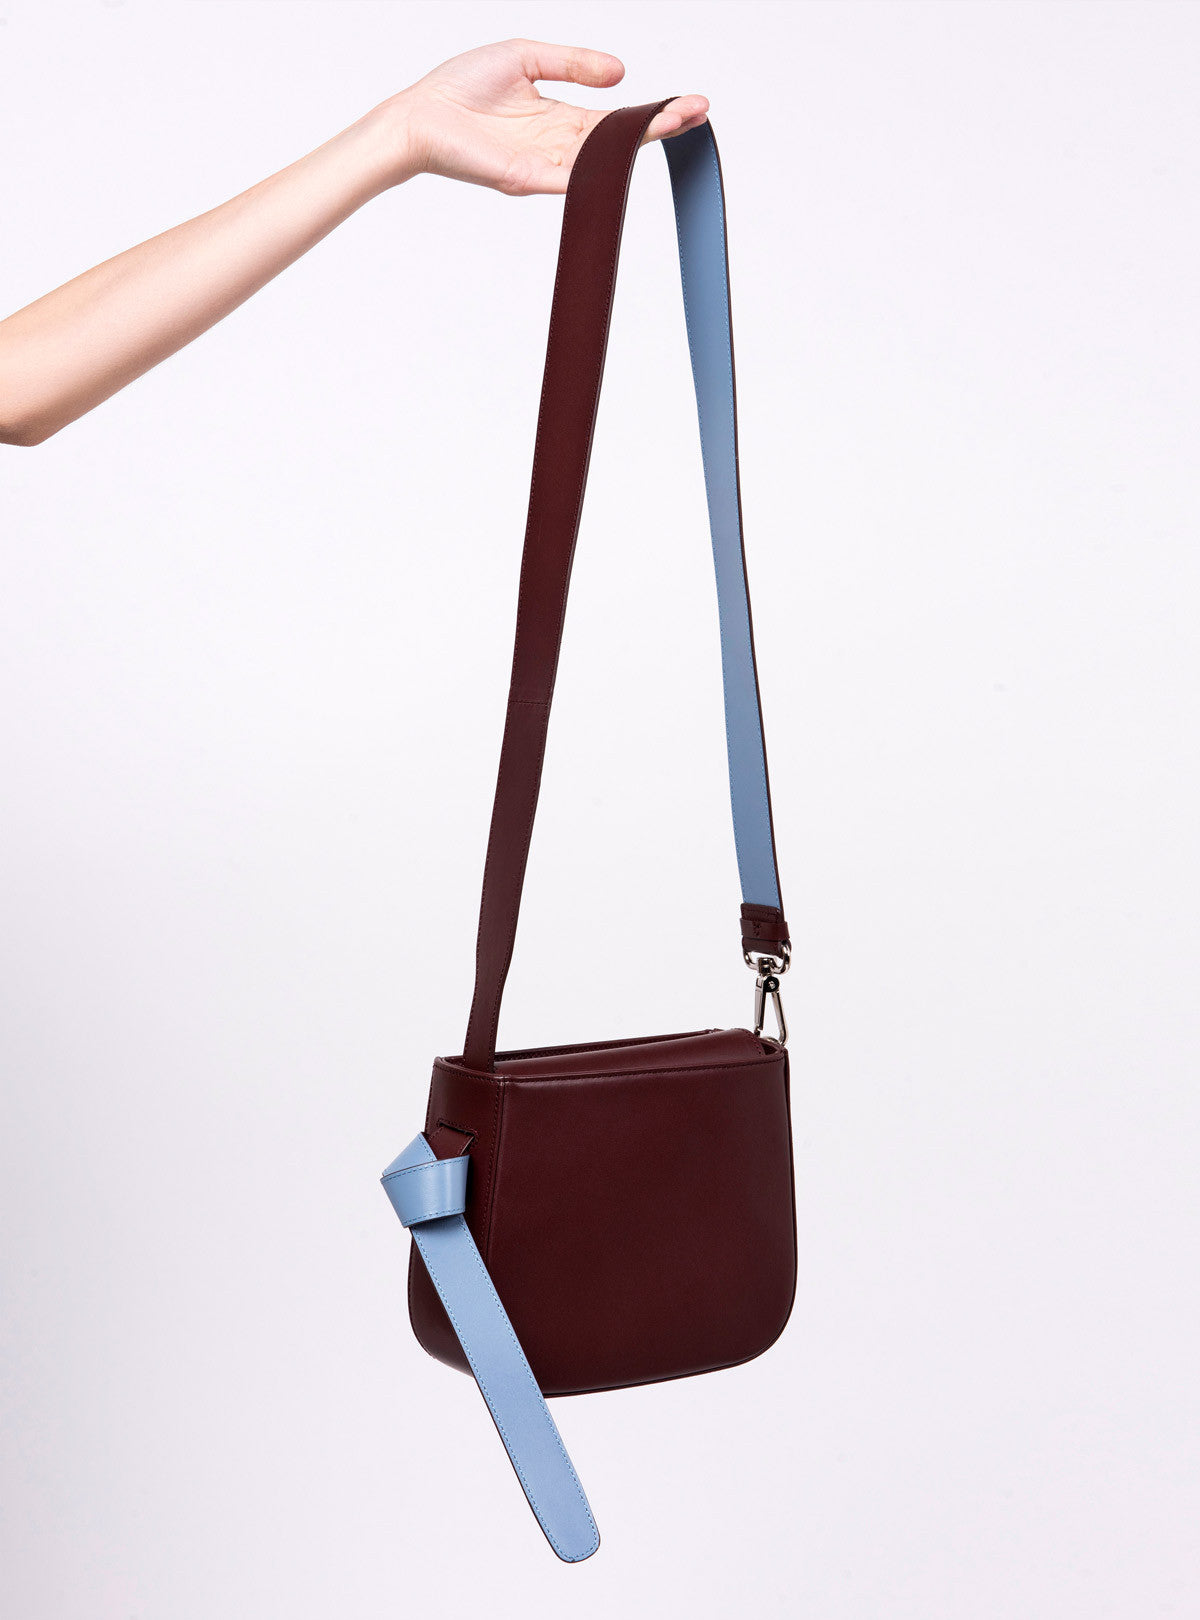 Color Block Bag by Atelier Park